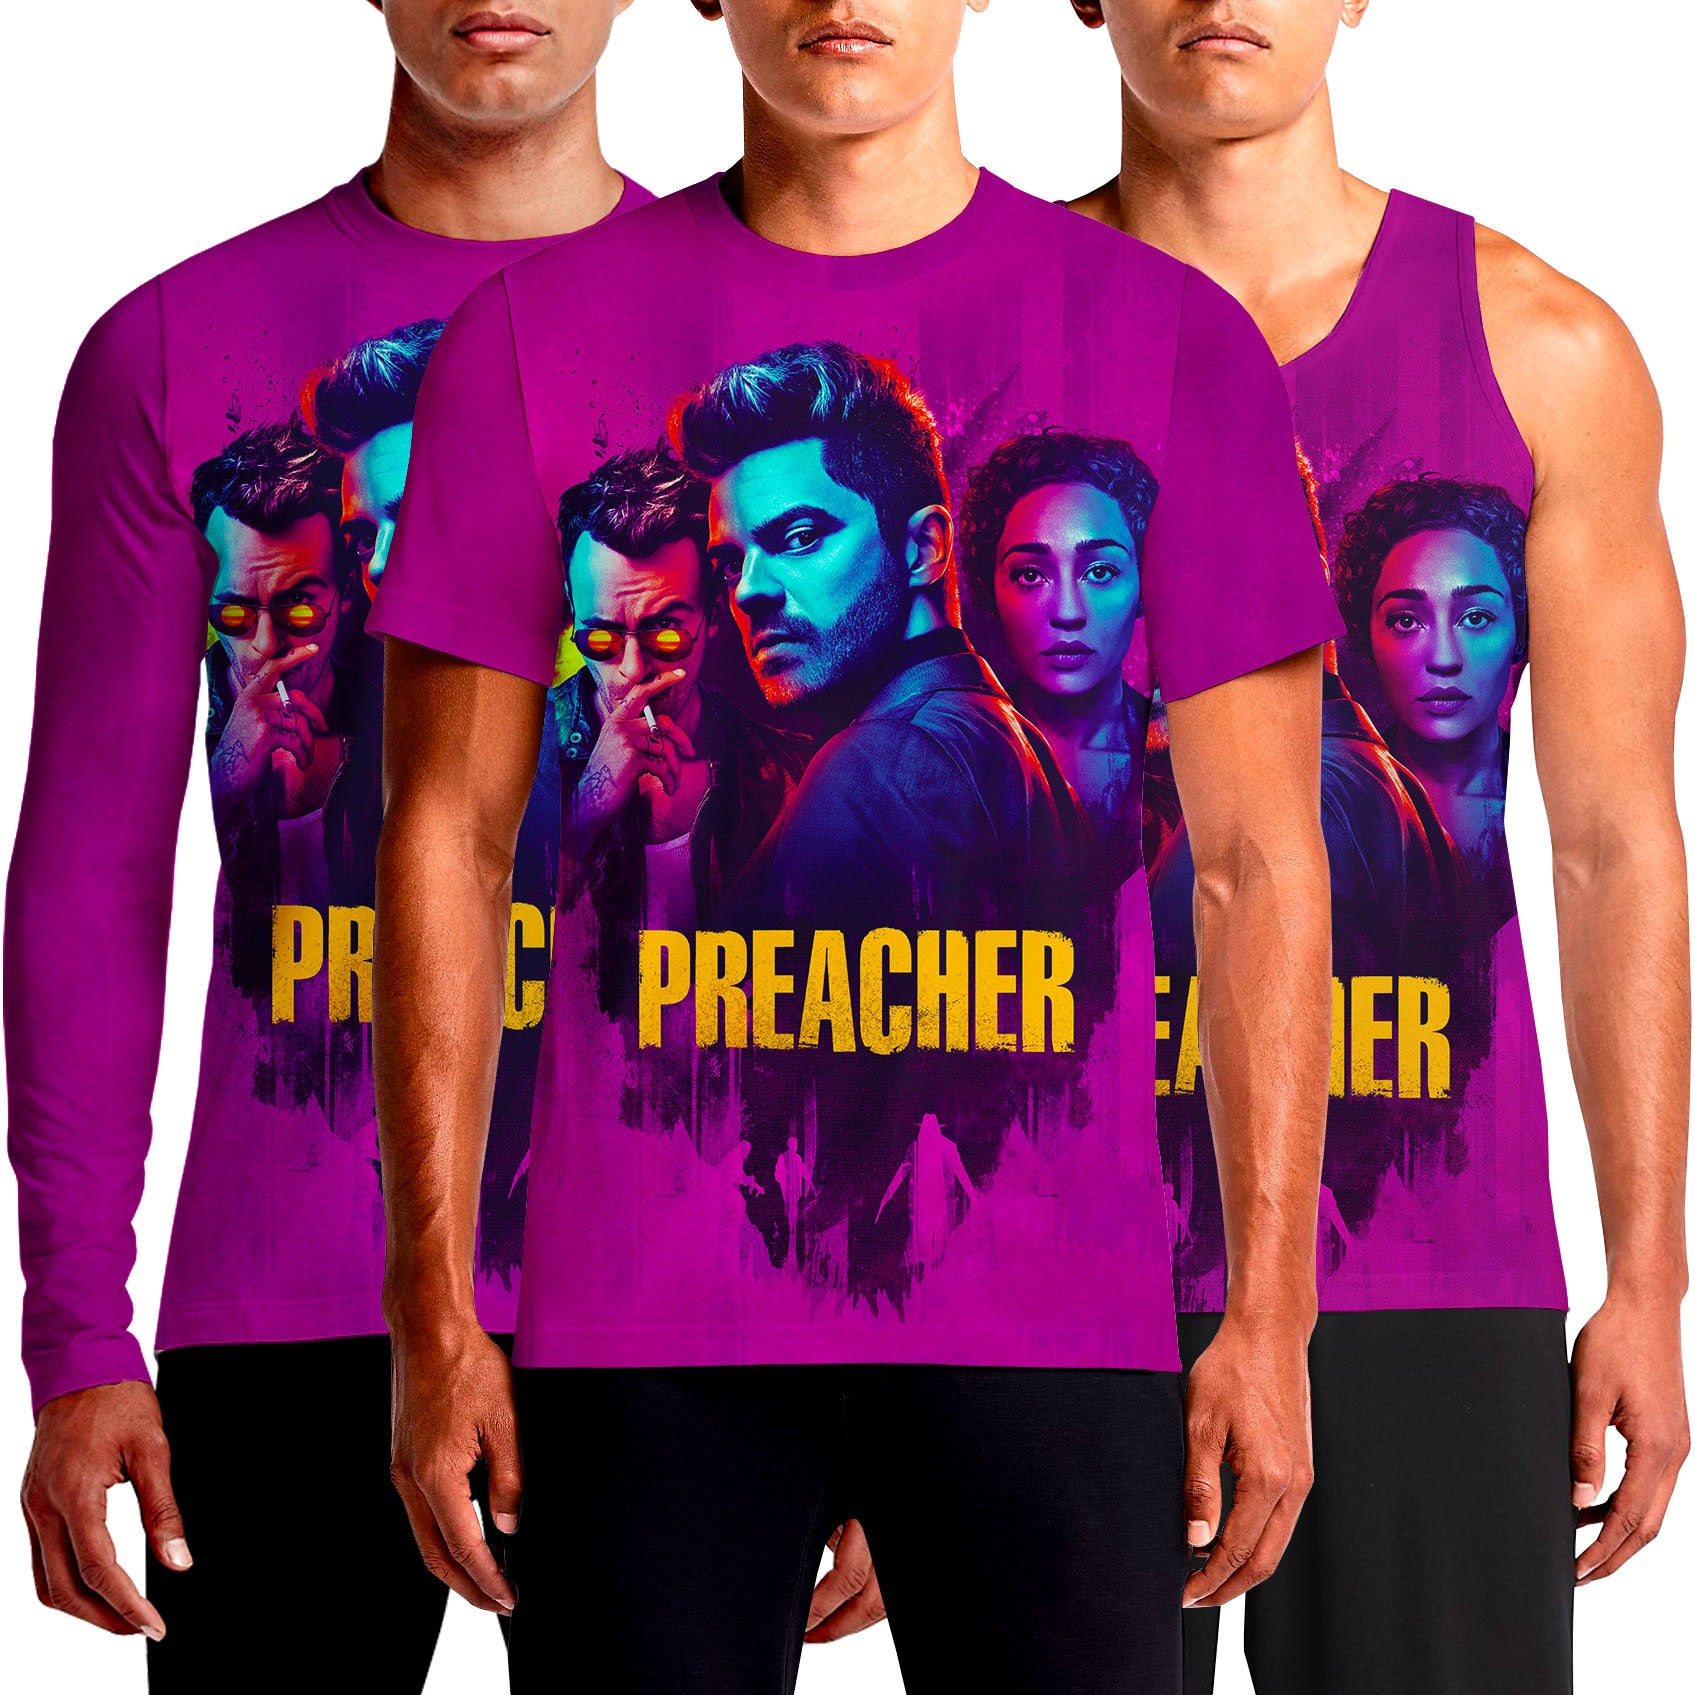 Preacher T Shirt Cool Jesse Custer AMC Shirts The Hiphop Pastor For Sale Cast 2017 Review Season 2 Netflix Ratings Return Tulip Eugene Cassidy Poster New Tee